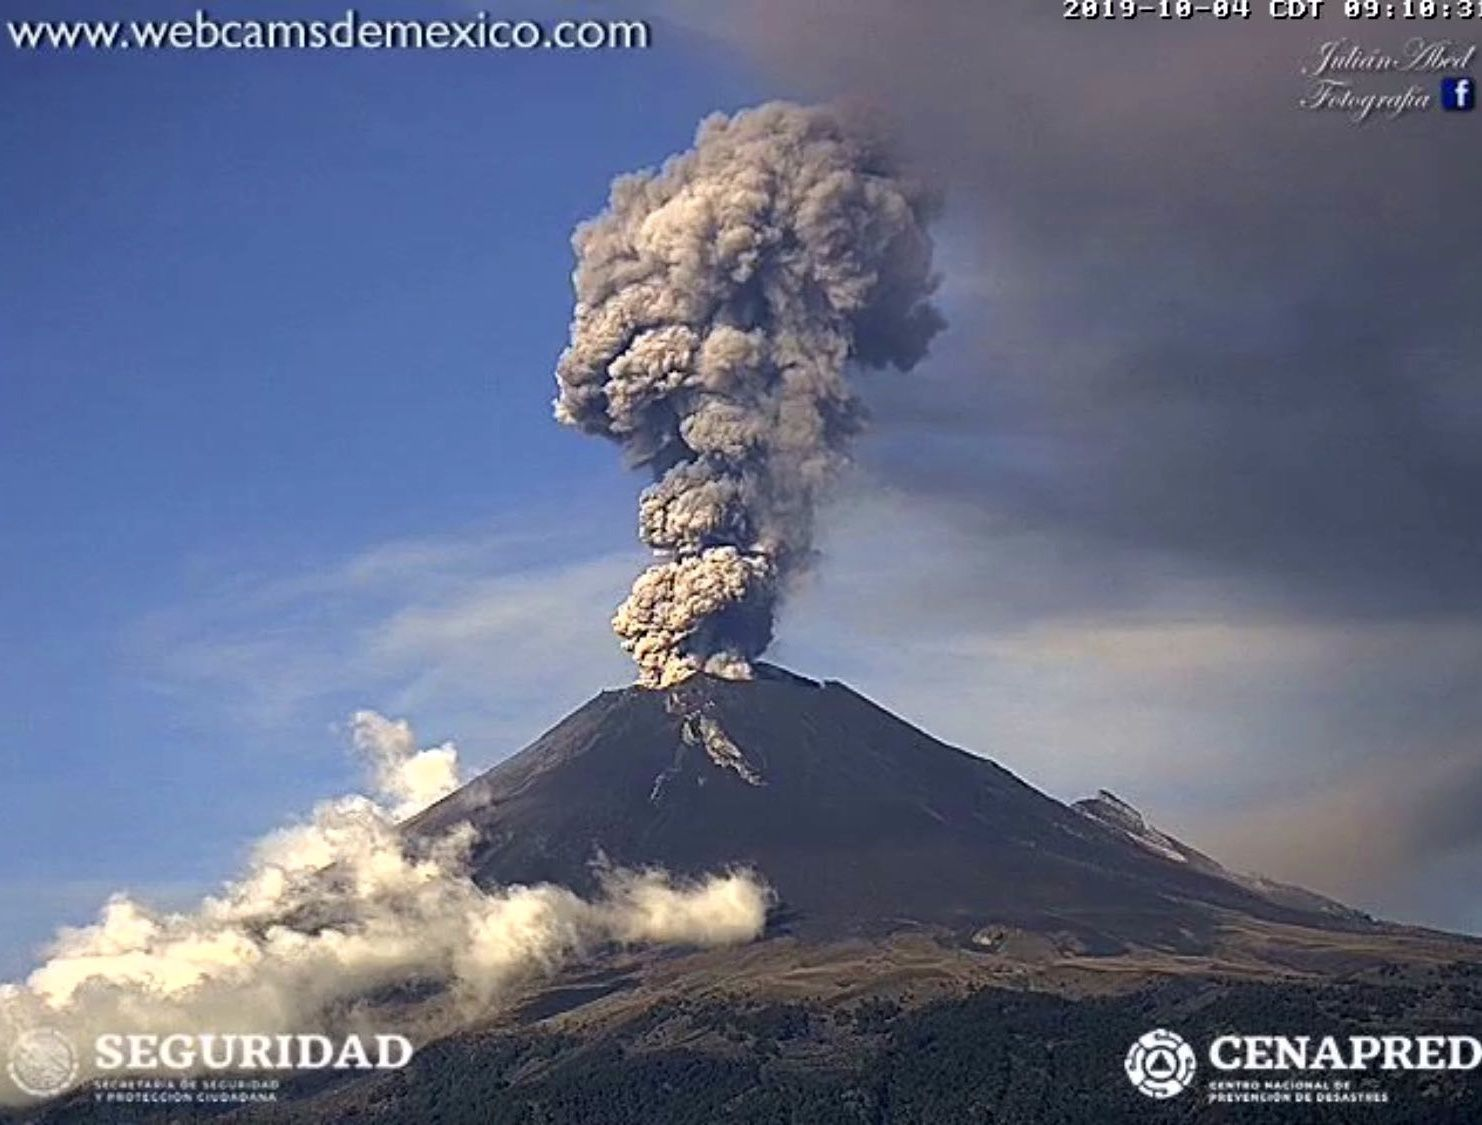 Popocatépetl - exhalation of 04.10.2019 / 9:10 - WebcamsdeMexico / Cenapred